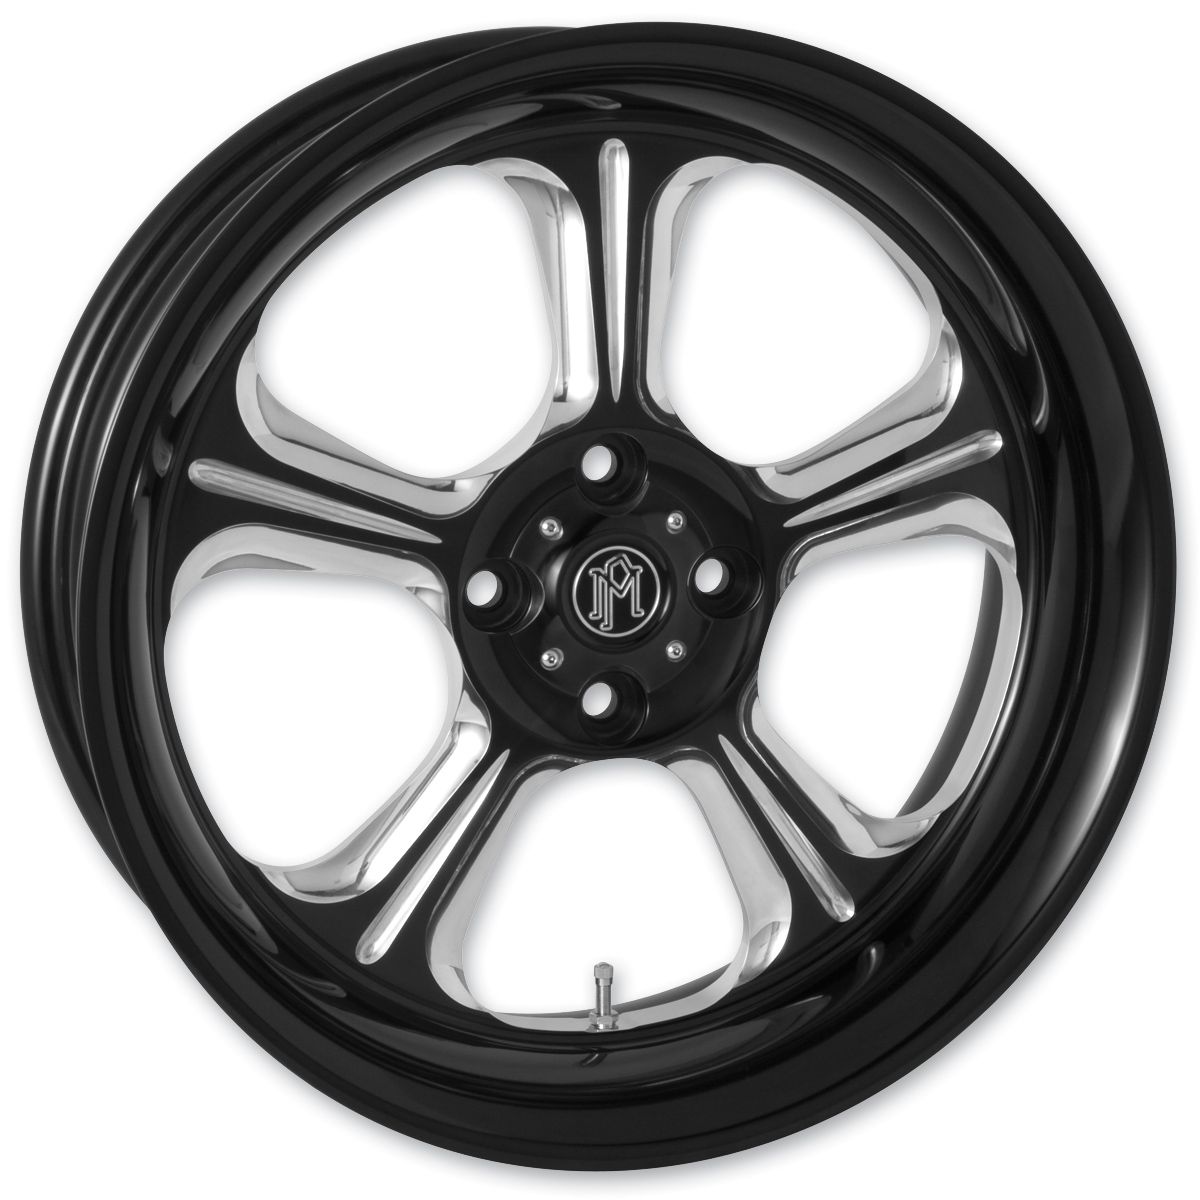 Performance Machine Wrath Platinum Cut Rear Wheel 18x5.5 ABS